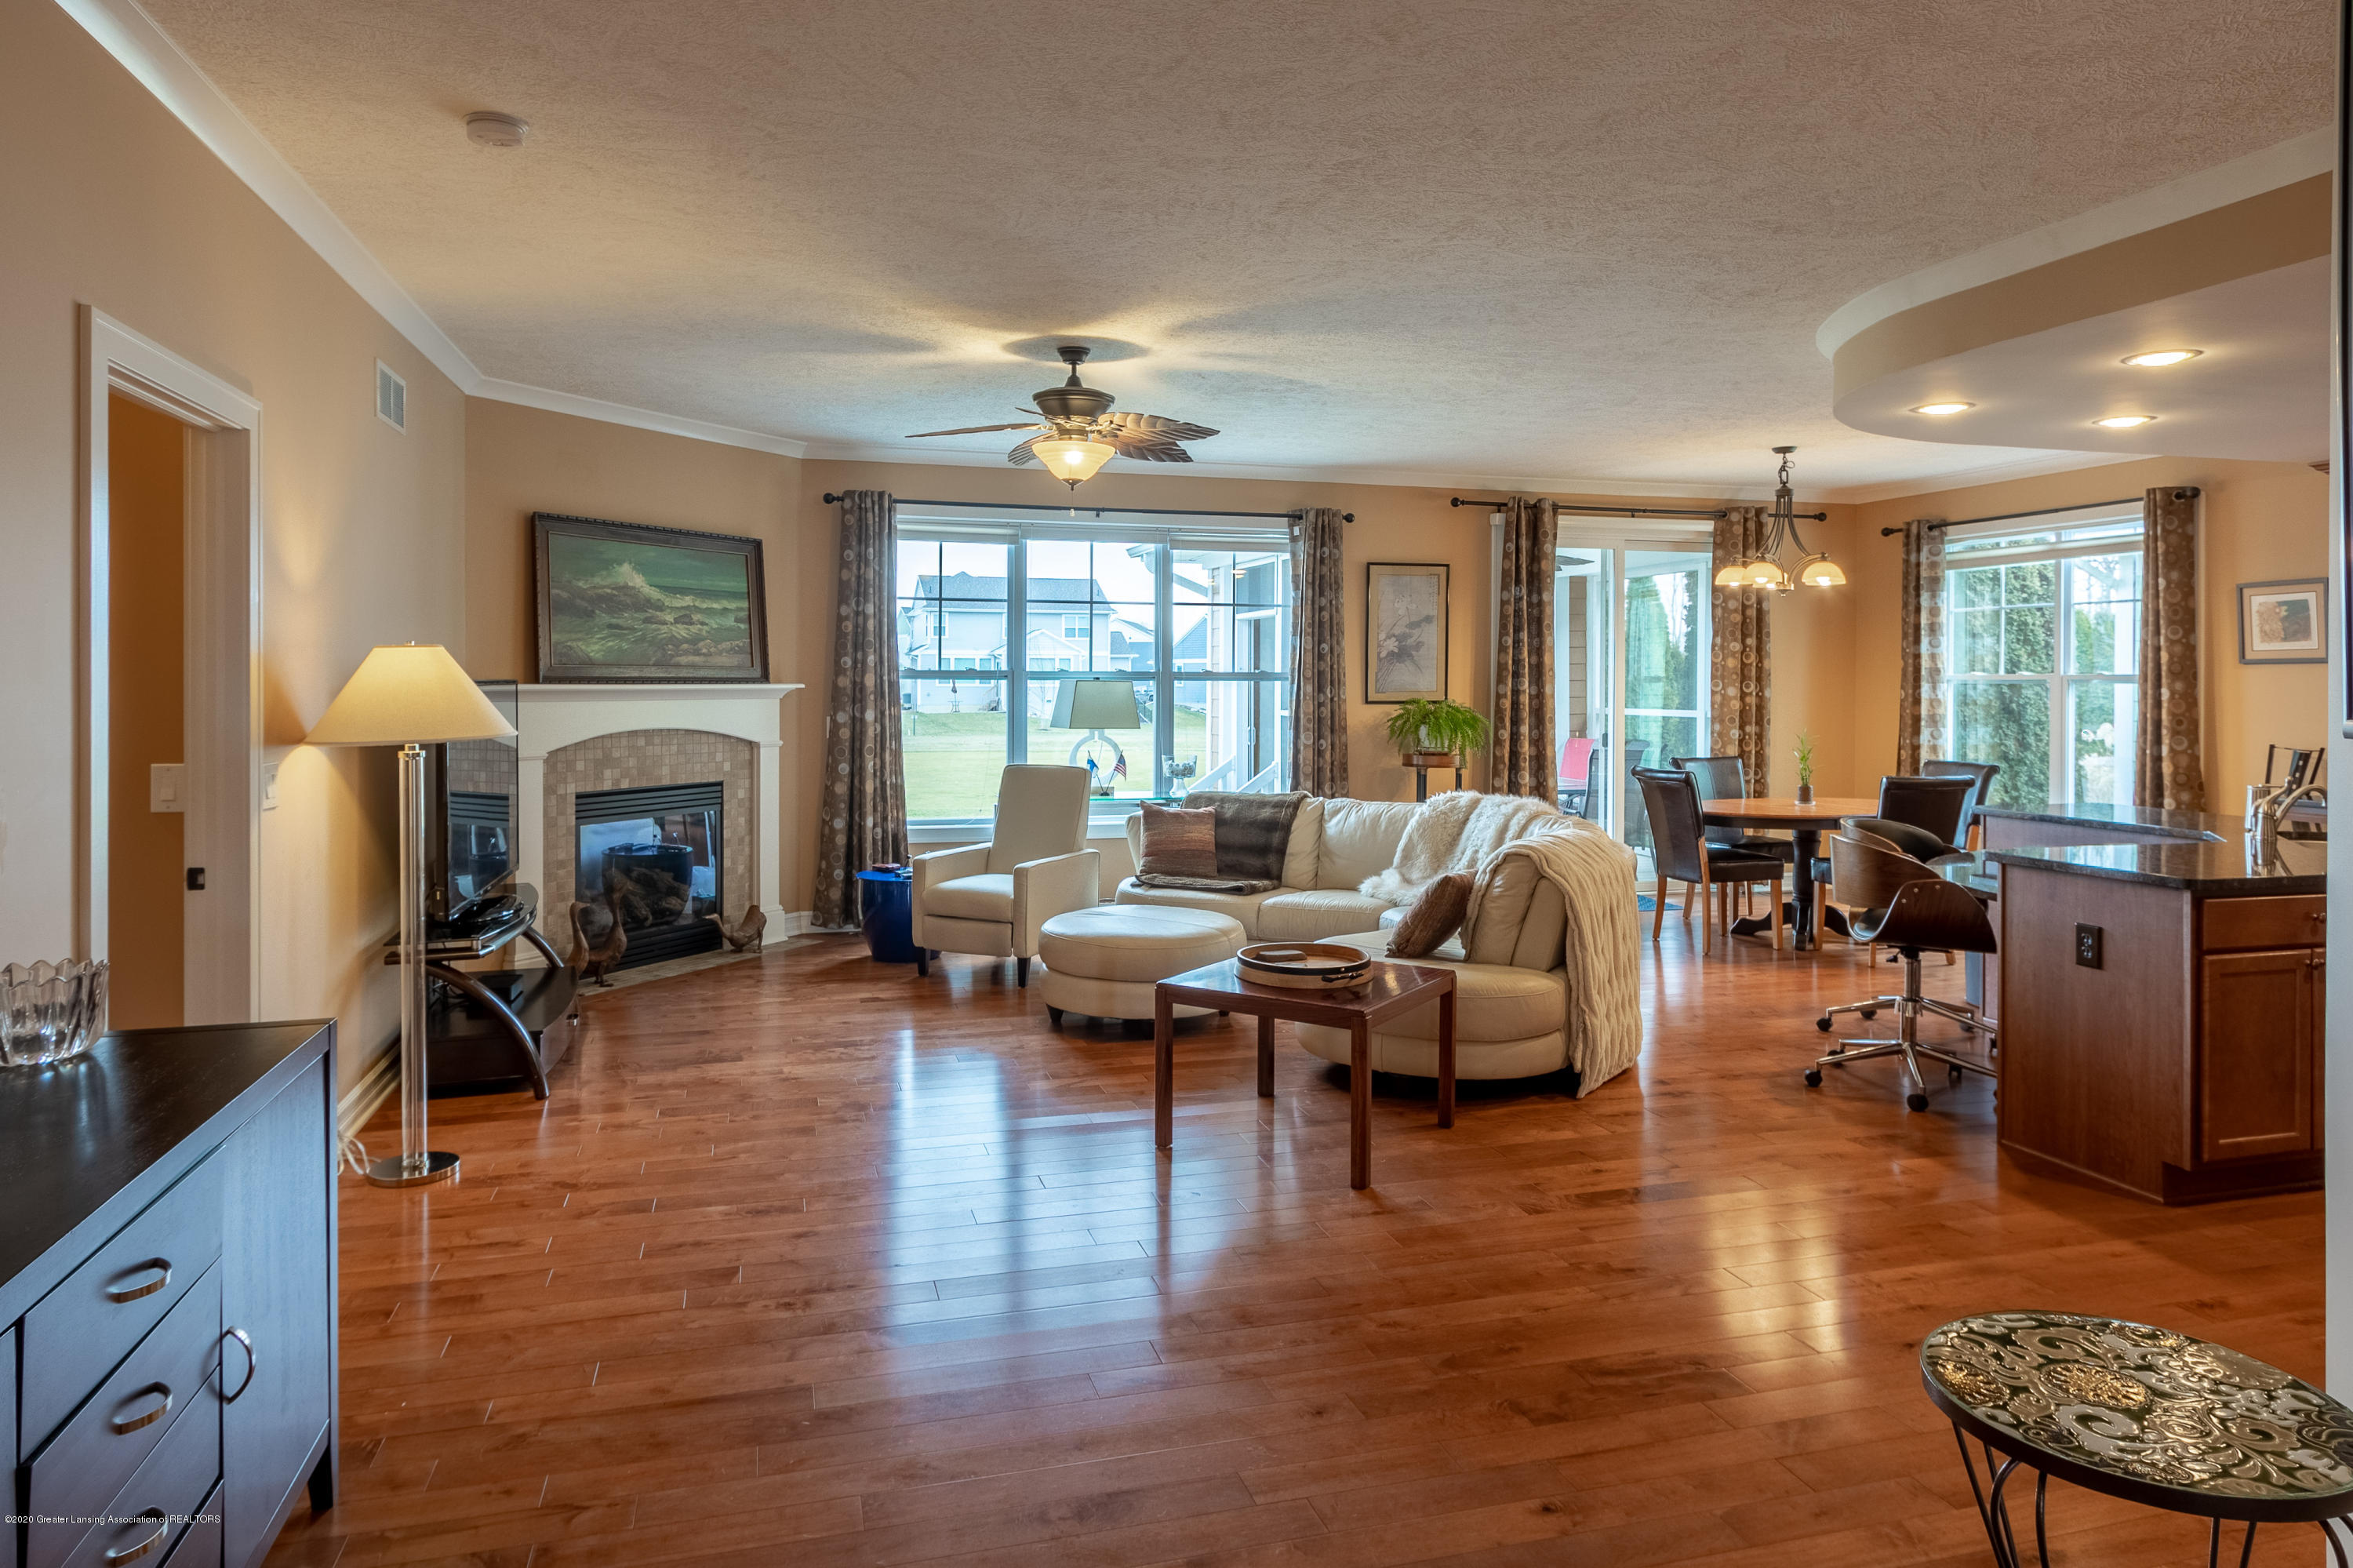 3852 Zaharas Ln - Living Room and Dining Area - 17